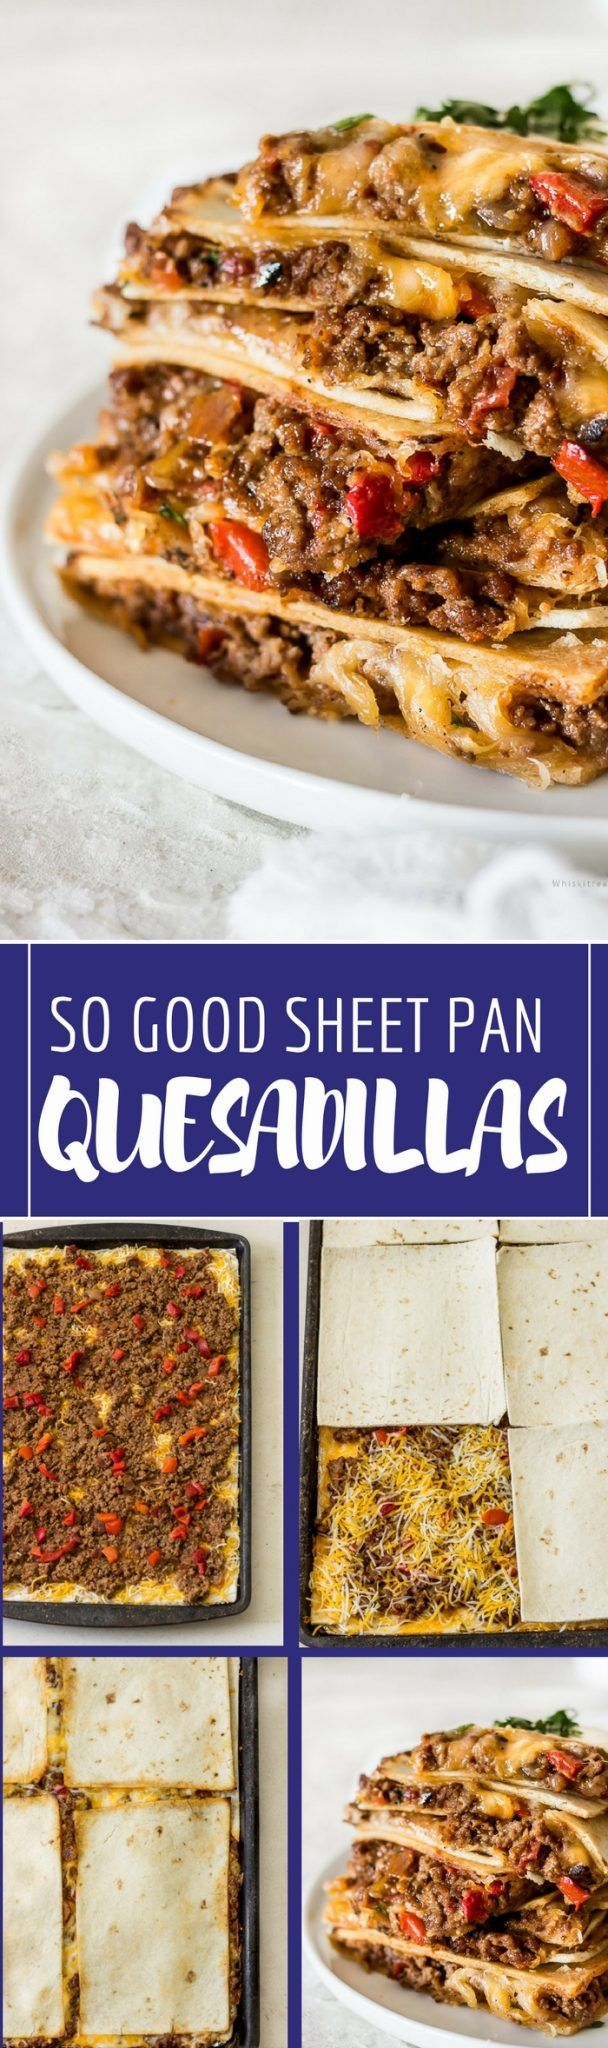 Sheet pan quesadillas are baked in the oven instead of the stove. These baking sheet quesadillas are made with soft flour tortillas and their loaded with grou